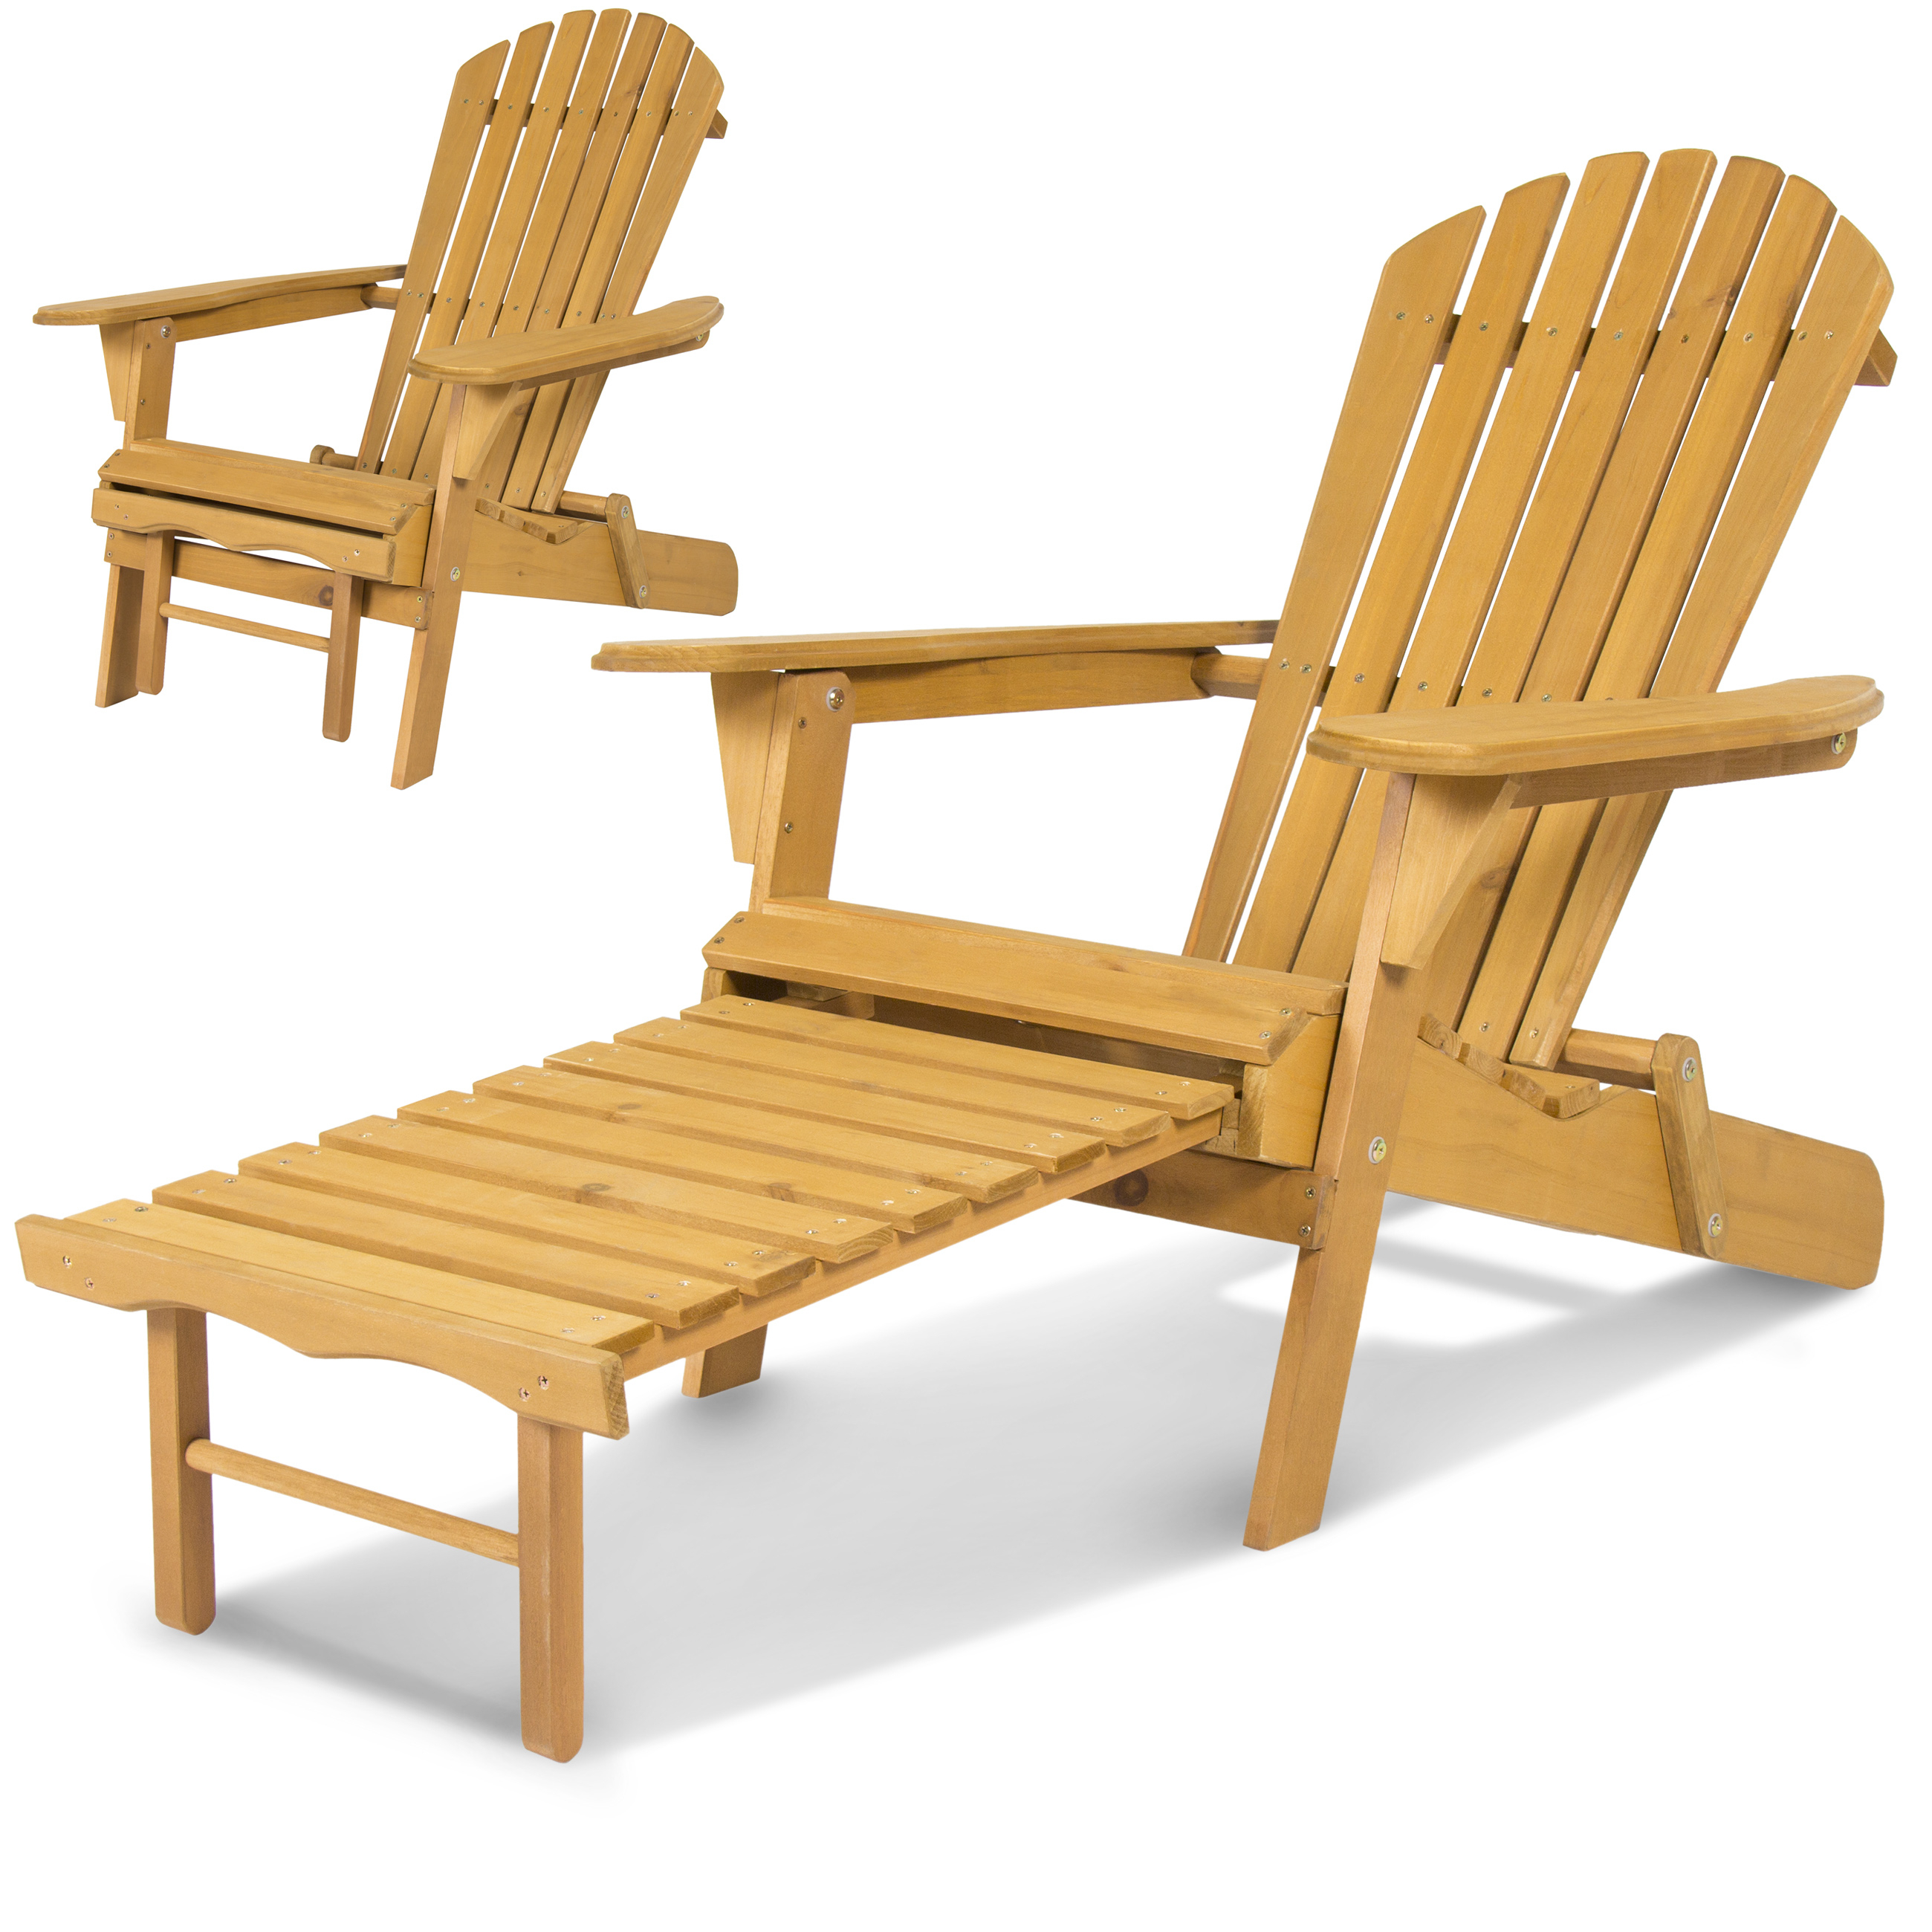 Adirondack Chairs With Footrest With Regard To Well Known Best Choice Products Foldable Wood Adirondack Chair W/ Pull Out Ottoman (View 8 of 25)